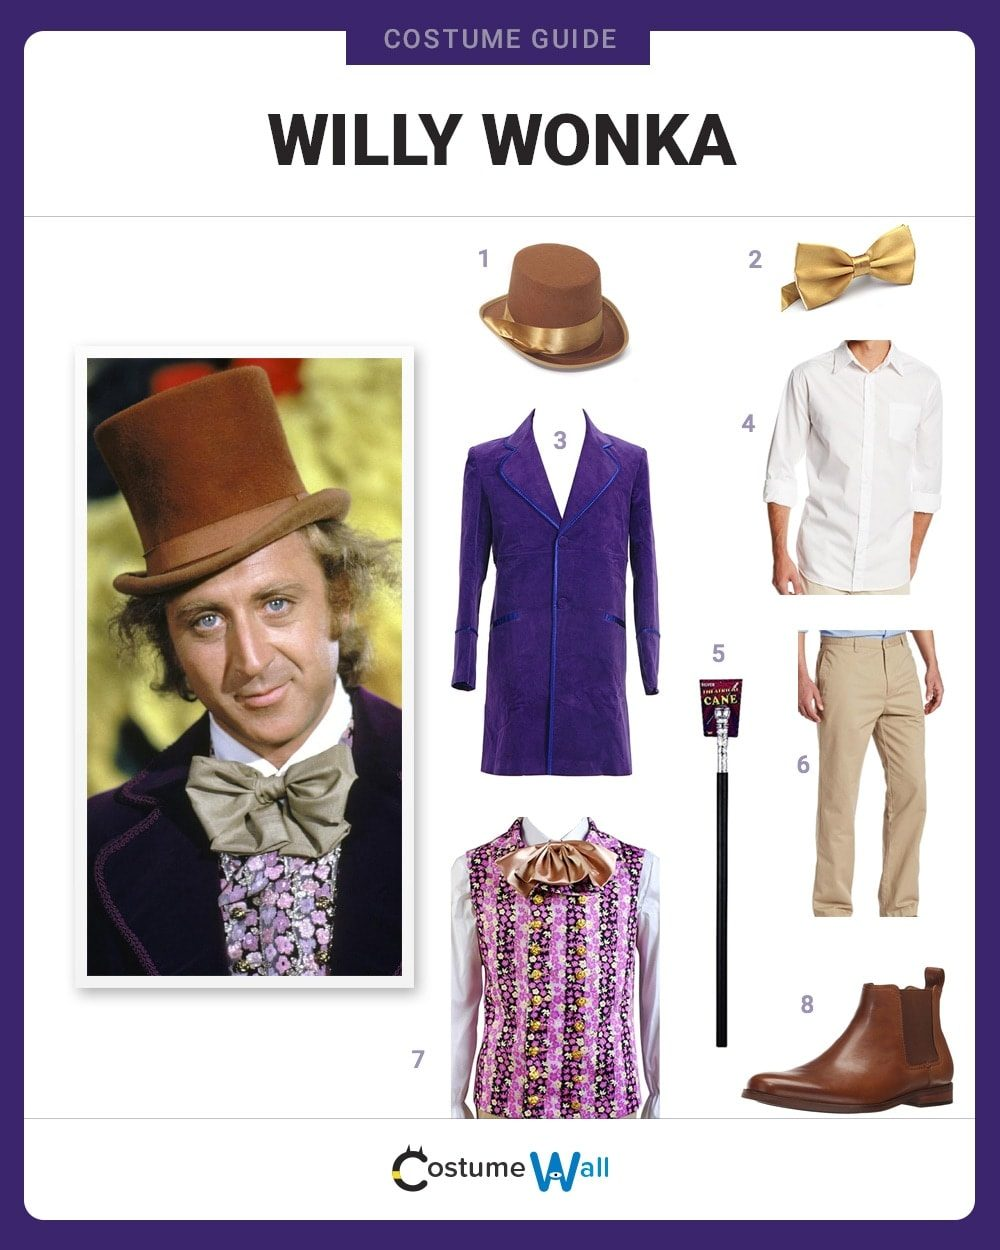 Willy Wonka Costume Guide